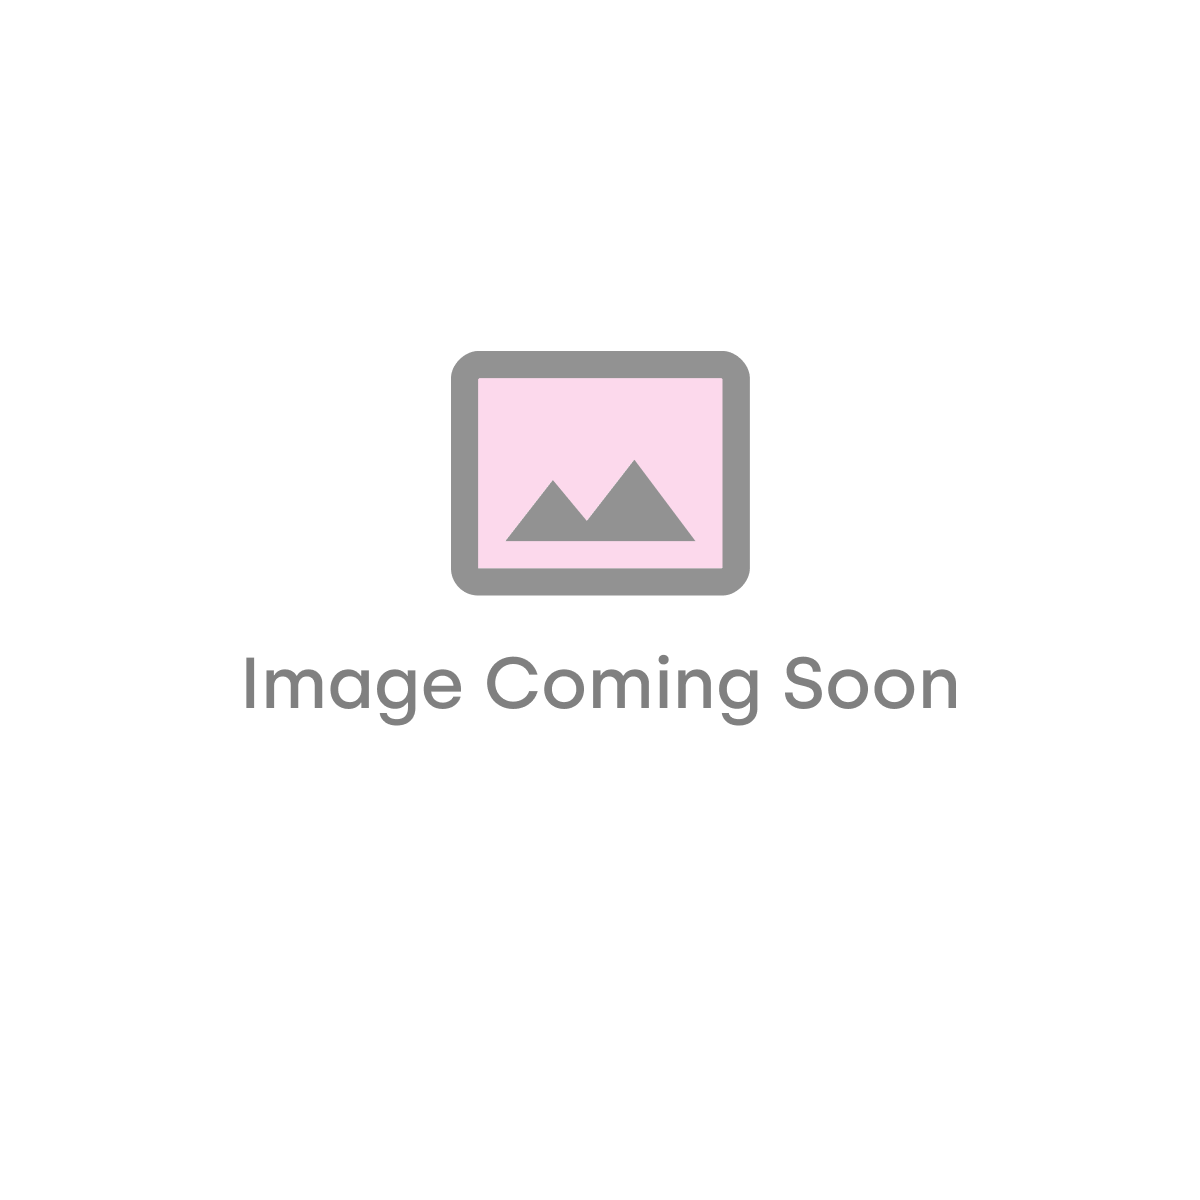 Elite Single Bowl Inset or Undermounted Stainless Steel Kitchen Sink & Waste - Copper Finish (19014)